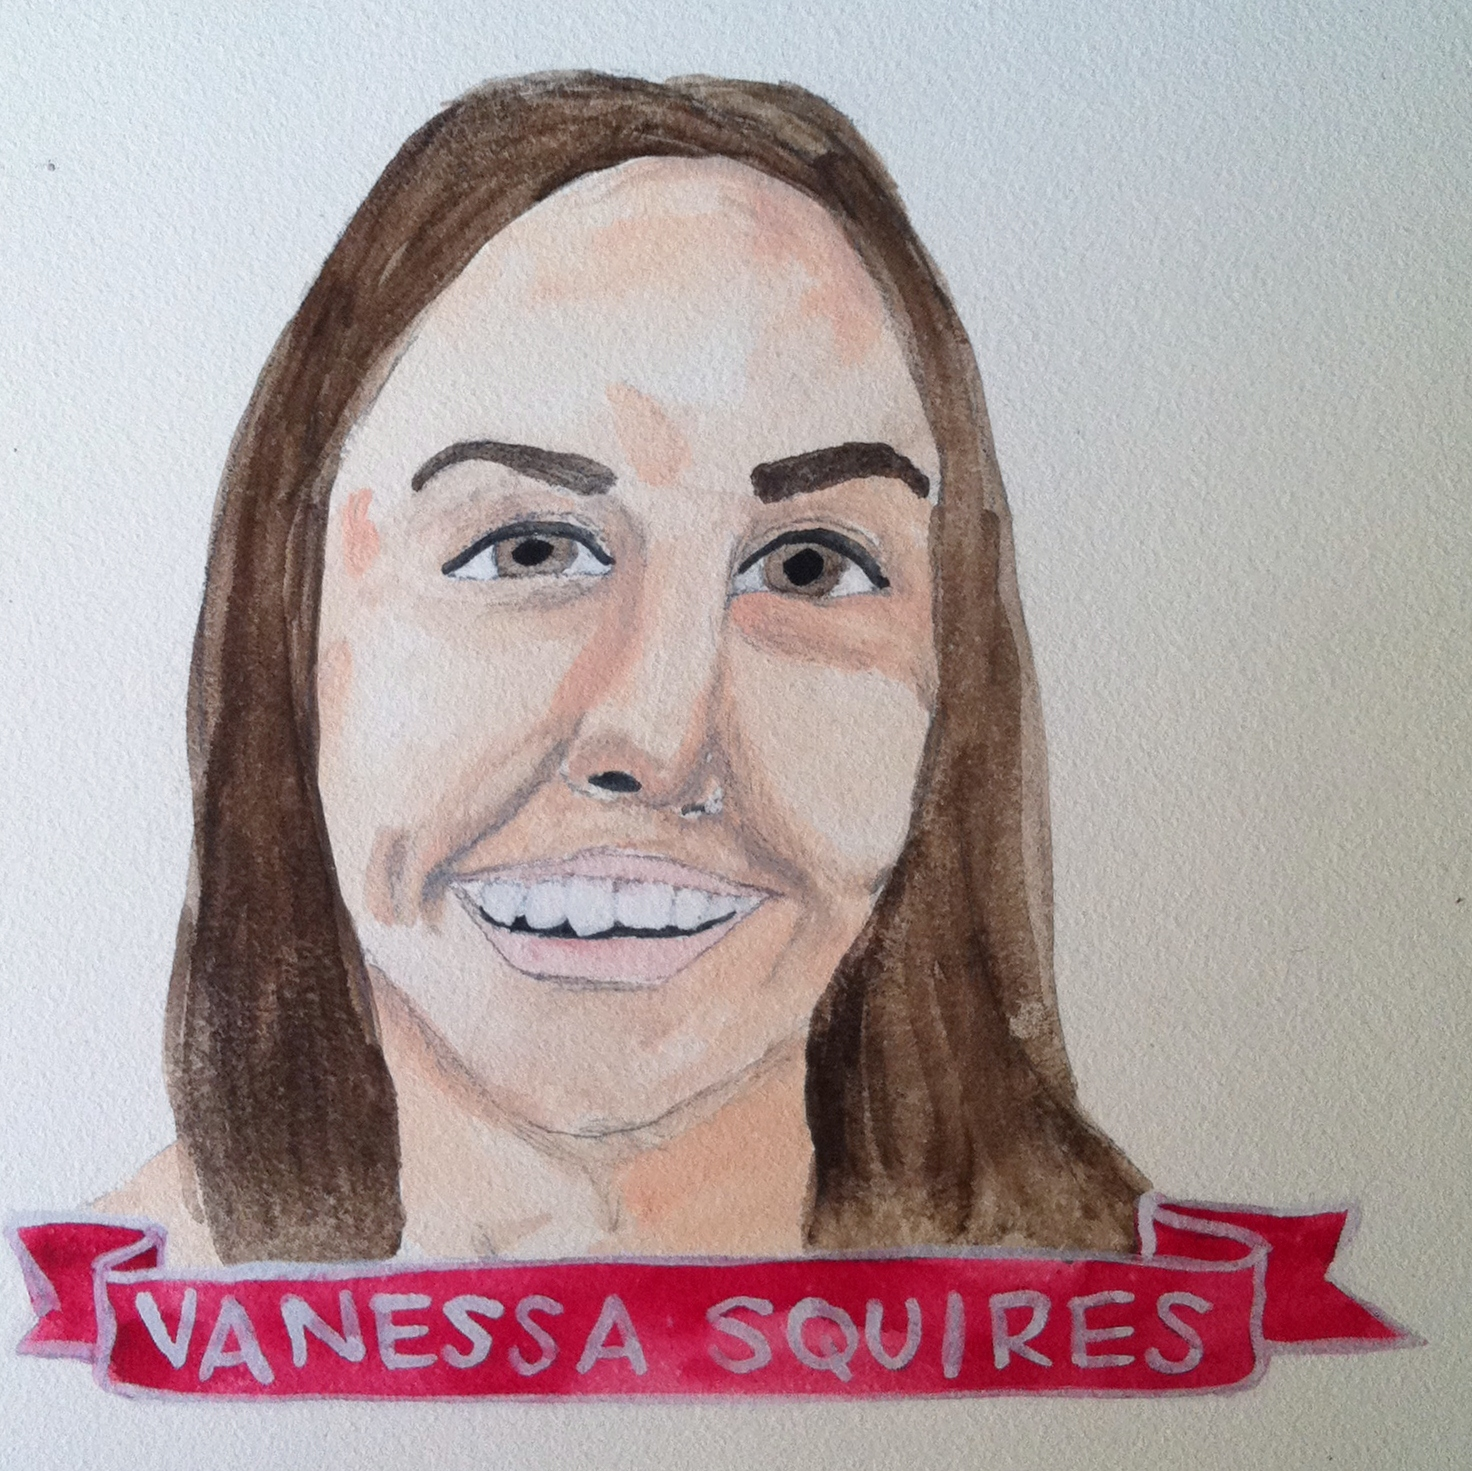 Talent Loves Company at Barbara Archer Gallery: 365 portraits by Lydia Walls - Vanessa Squires